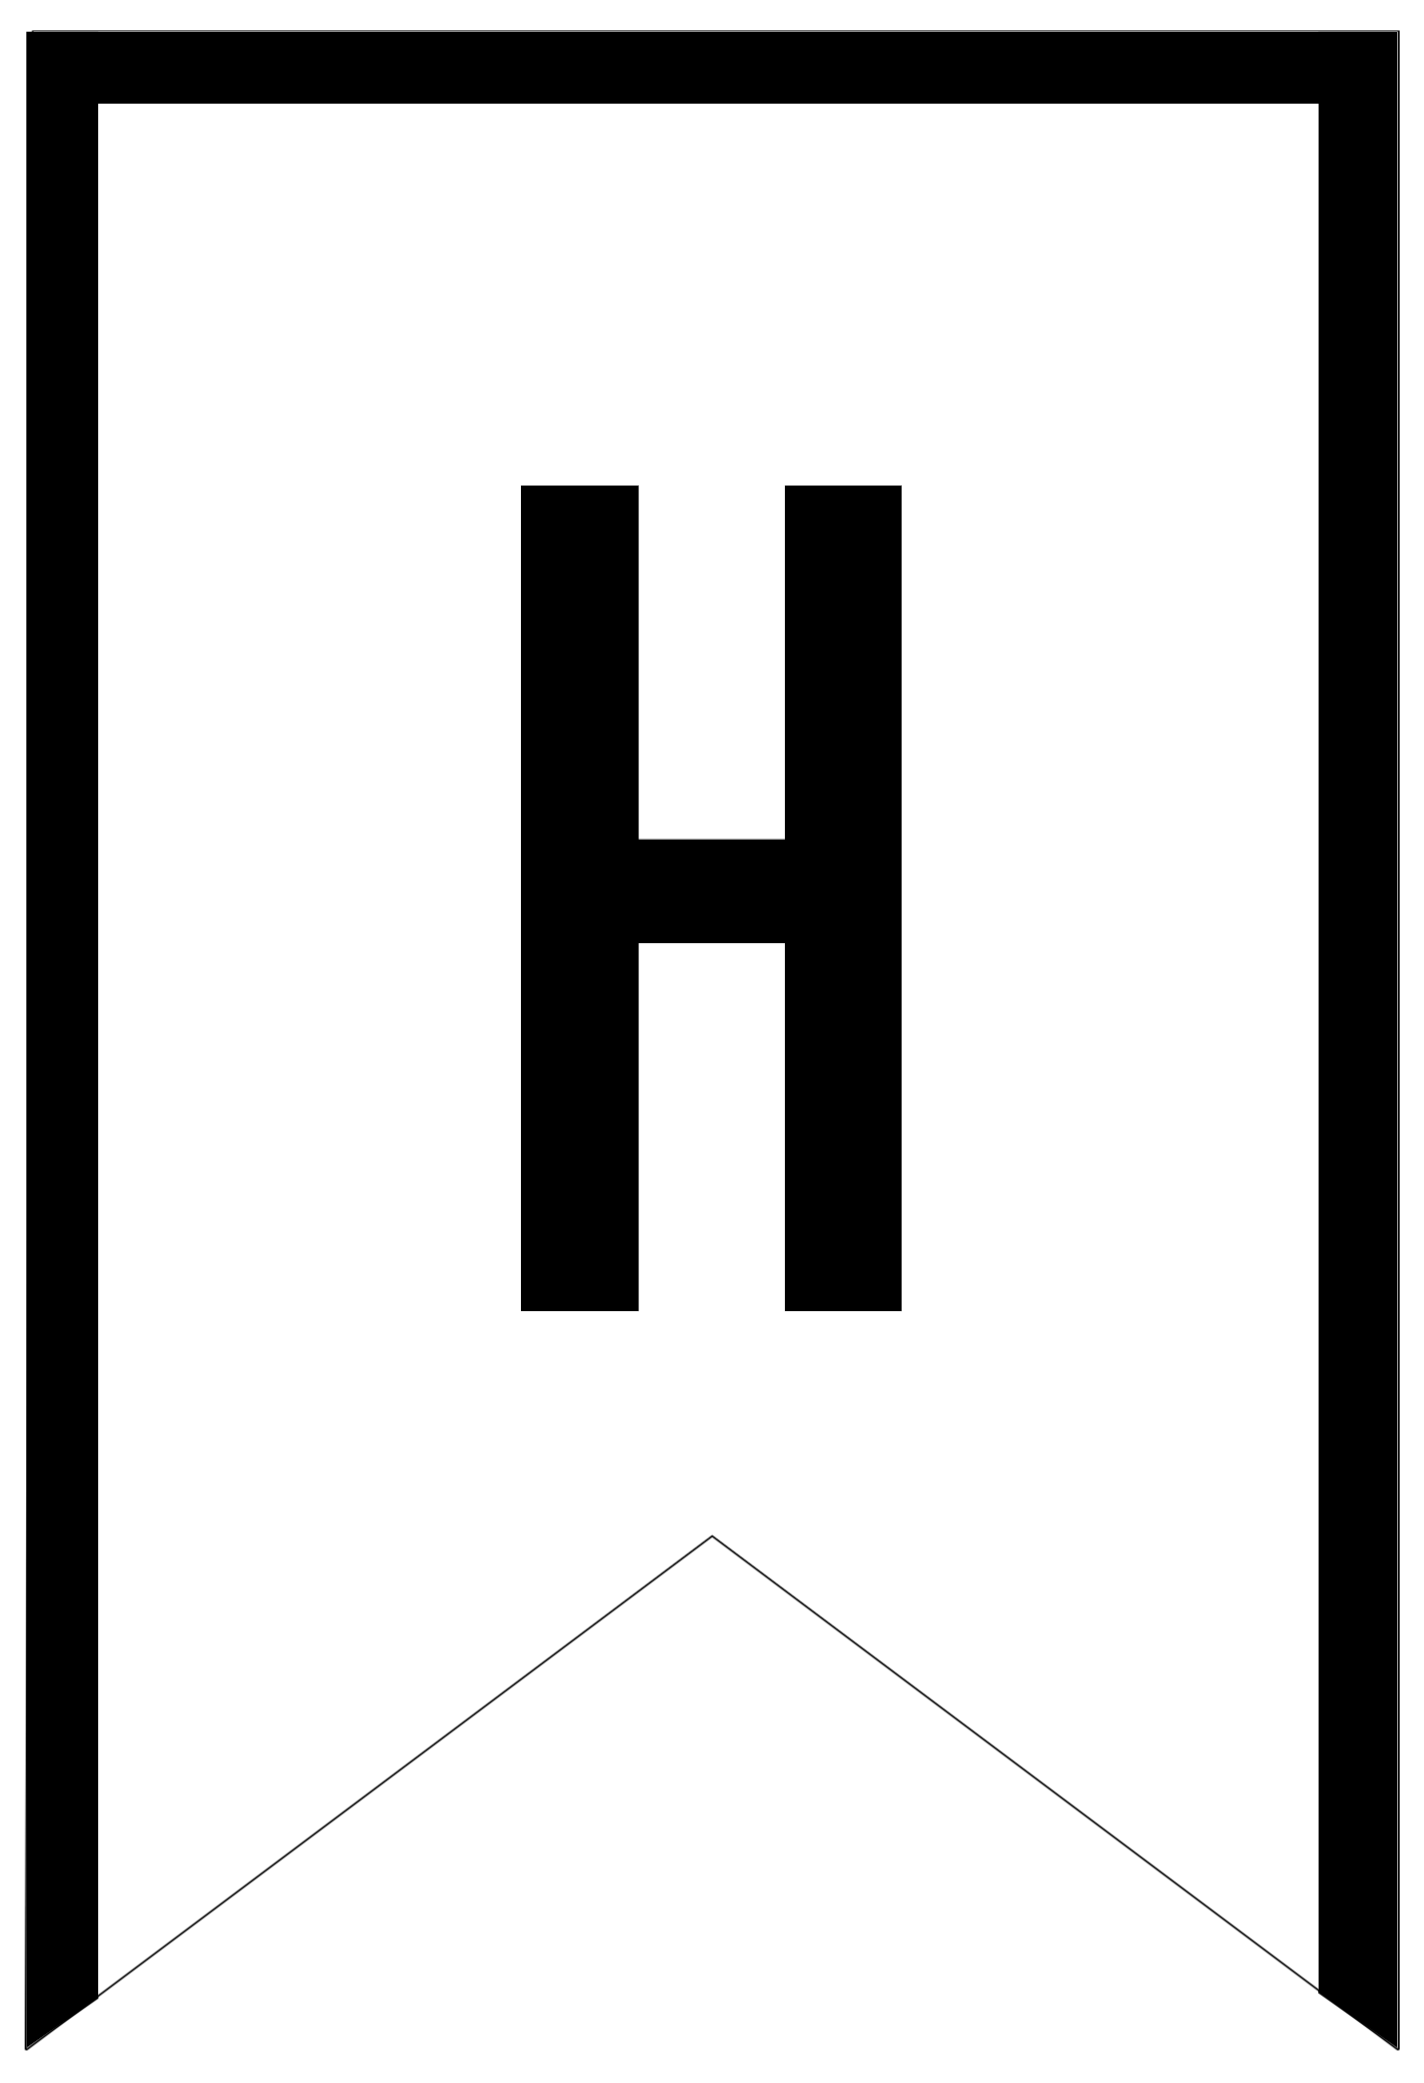 H  Free Printable Banner Alphabet Letters Template on large printable alphabet letter r template, block letter alphabet font template, 2 inch alphabet letters printable template, free printable retirement card template, alphabet letter w template, free animated powerpoint presentations alphabet, alphabet letter b template, free printable letter v template, free alphabet templates letter e templates, free alphabet letter stencil templates, free alphabet templates to print, alphabet letters cut out template, free printable flag banner template, free printable lower case alphabet template, u letters alphabets template,